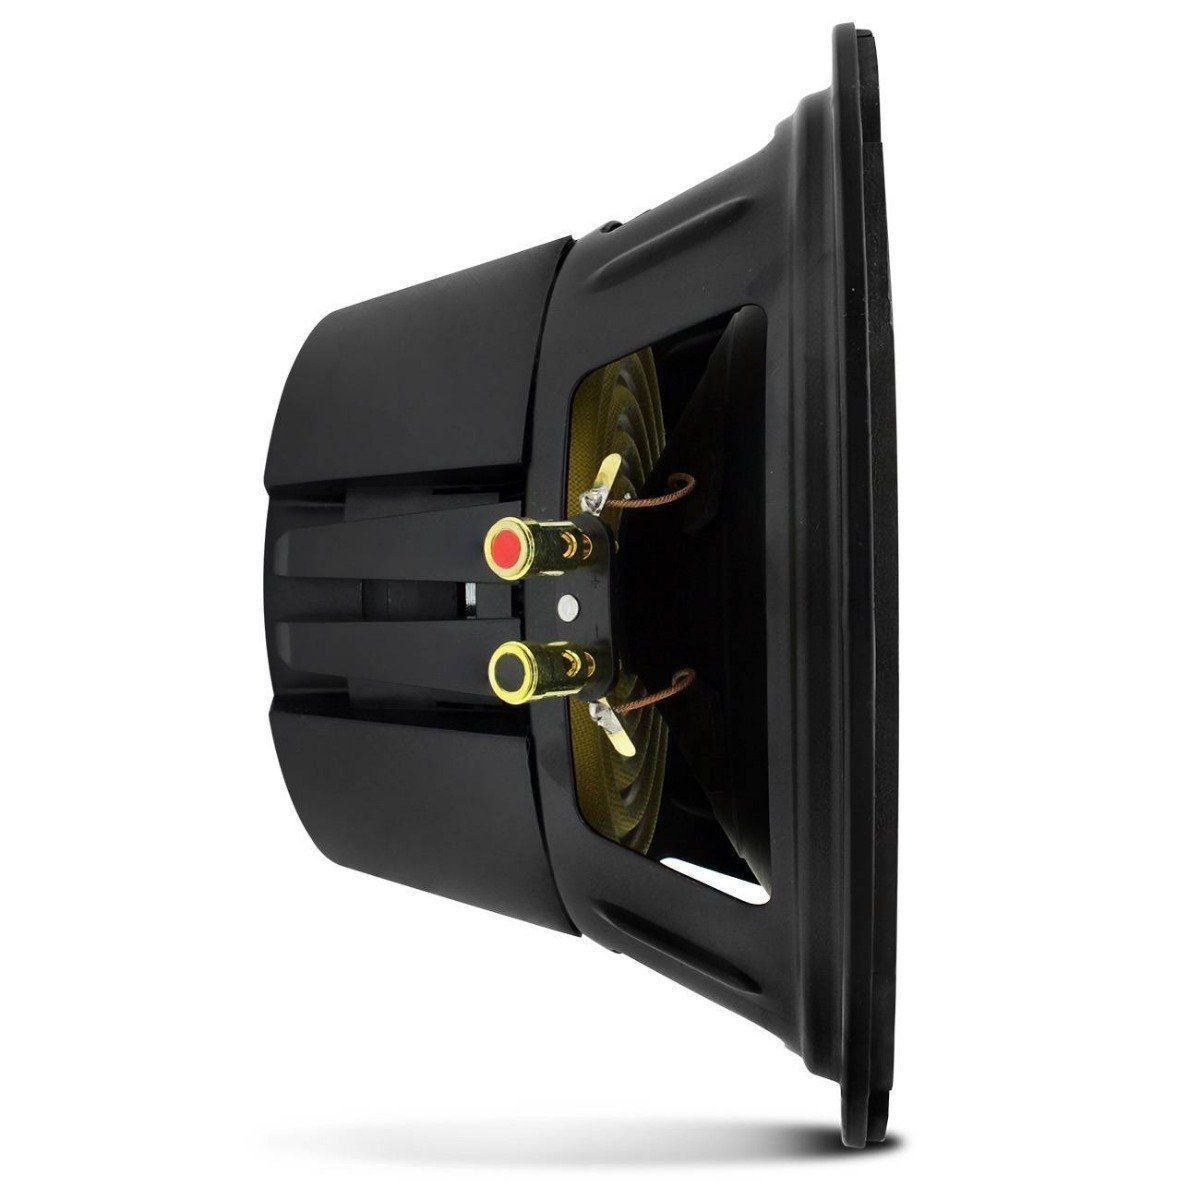 Alto Falante Subwoofer 12 Pioneer 4ohm Ts-w3090 600 Rms